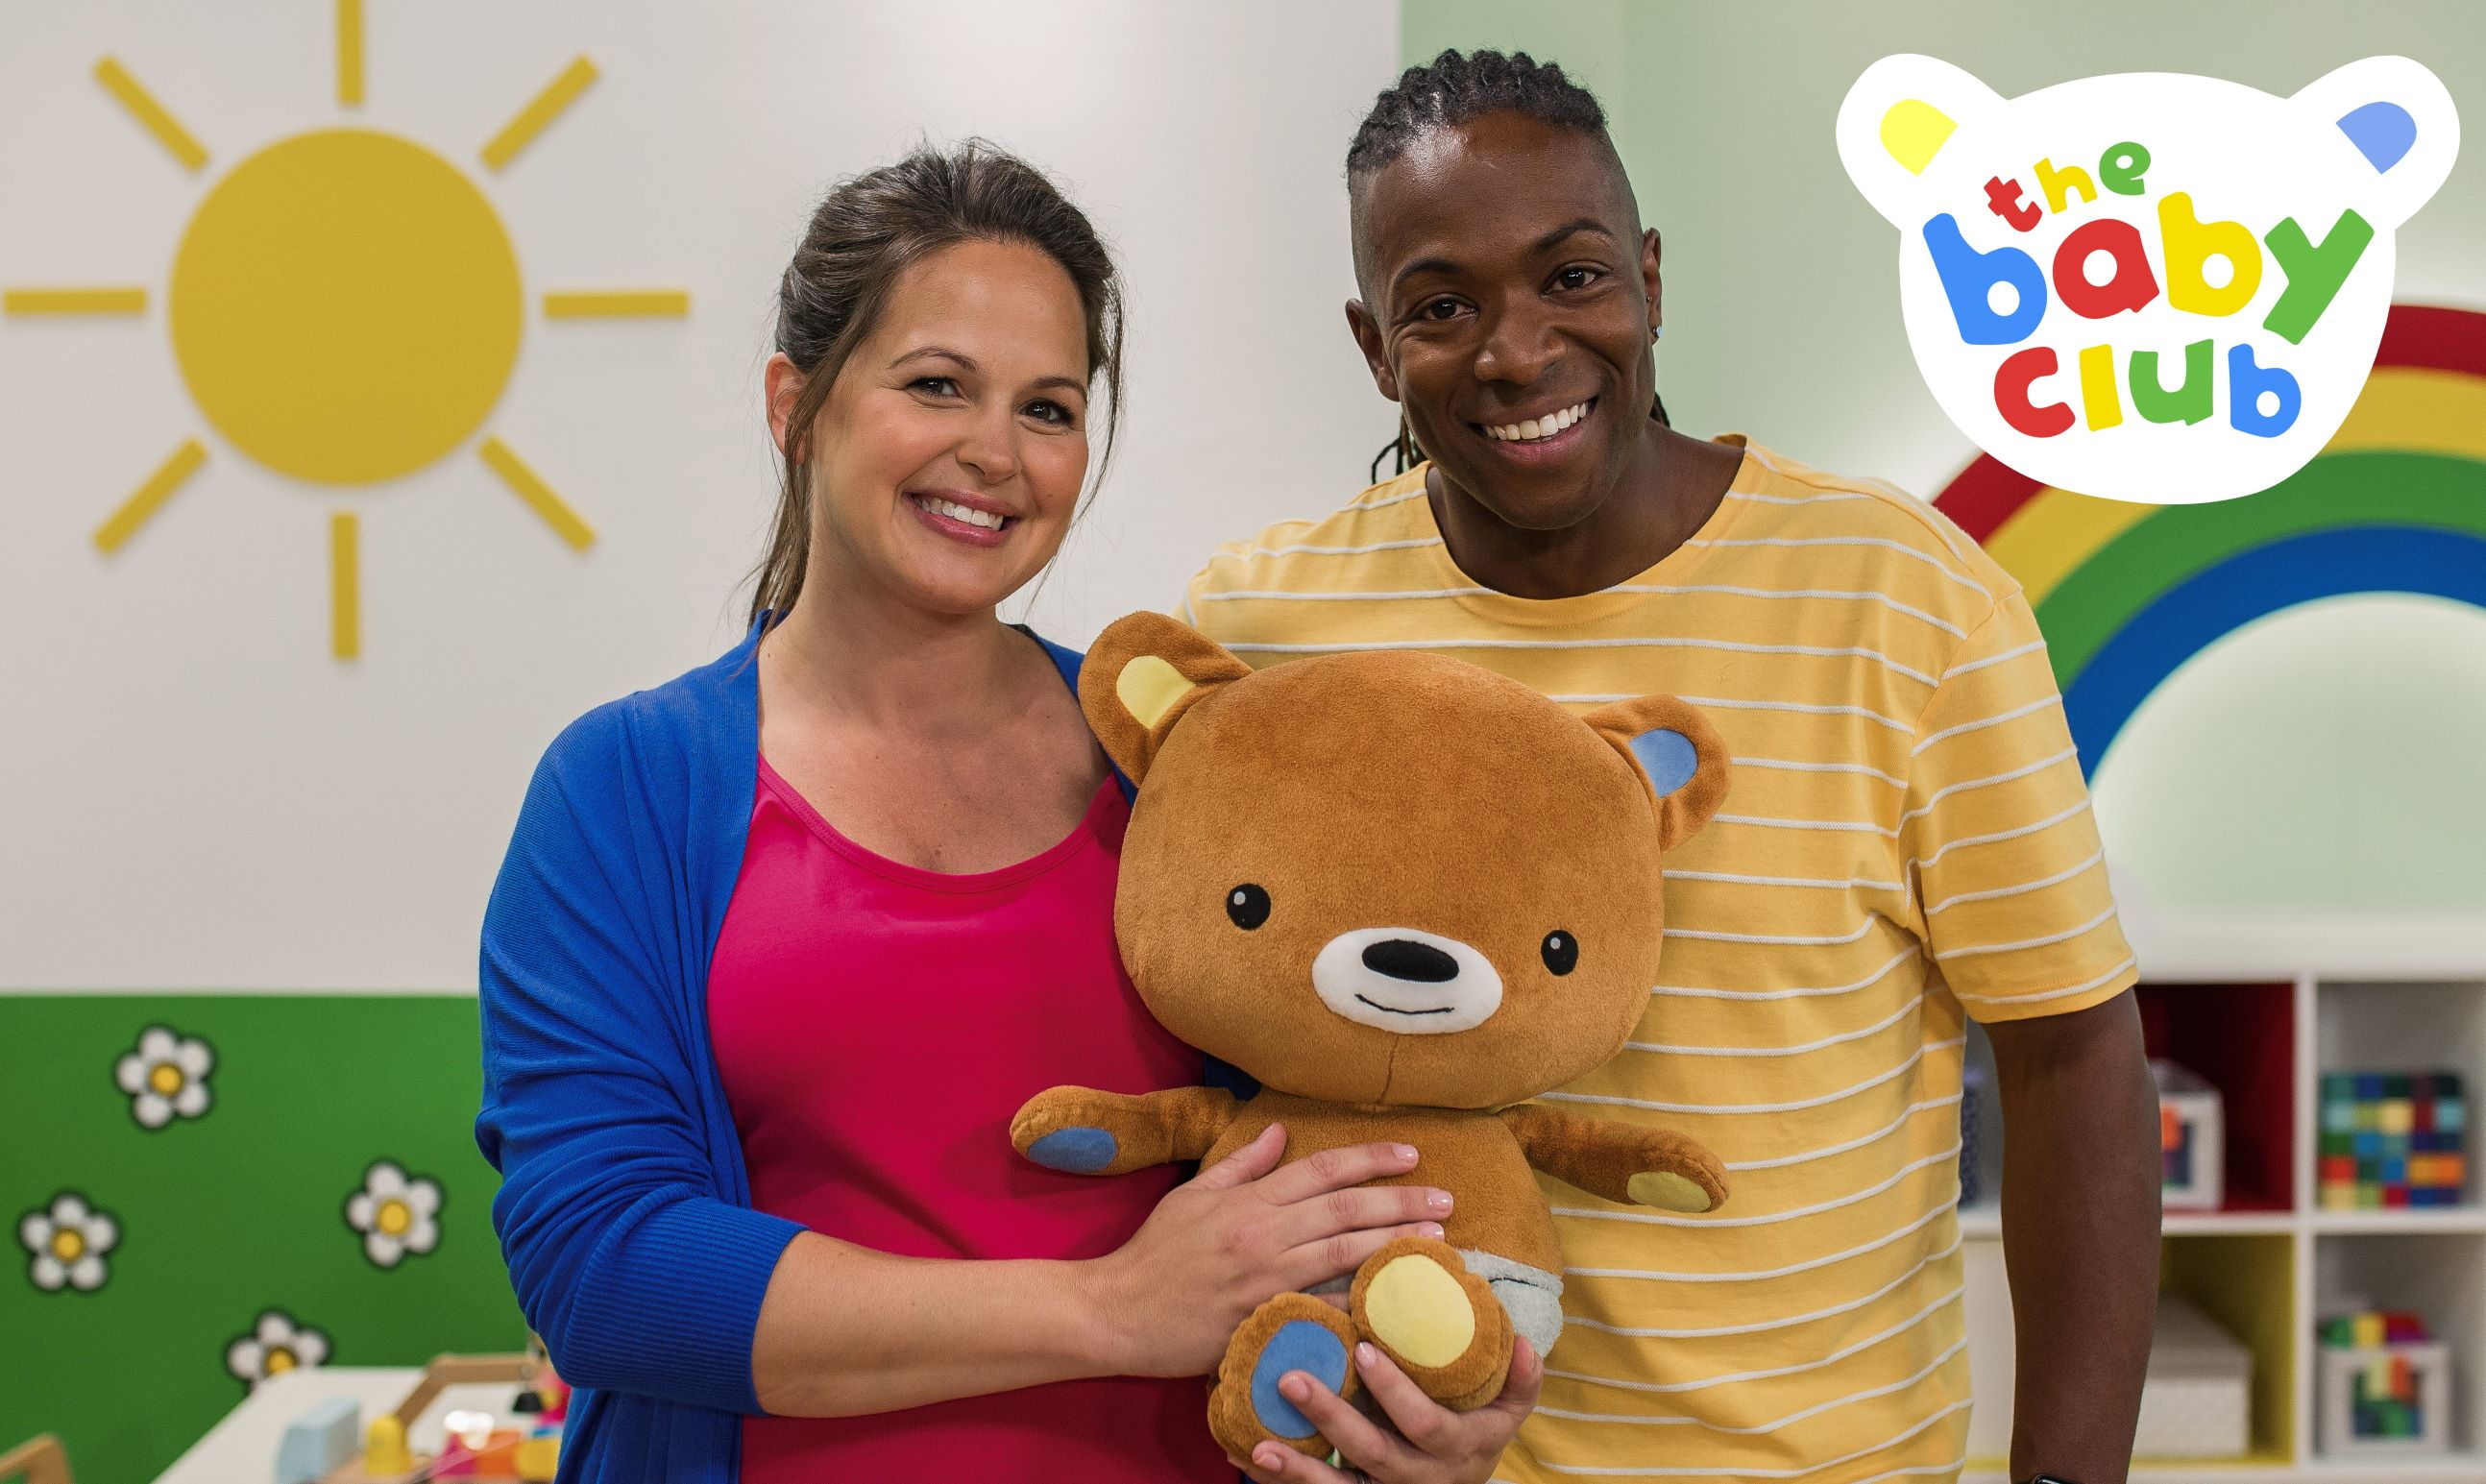 The Baby Club presenters - Giovanna, Nigel and Baby Bear